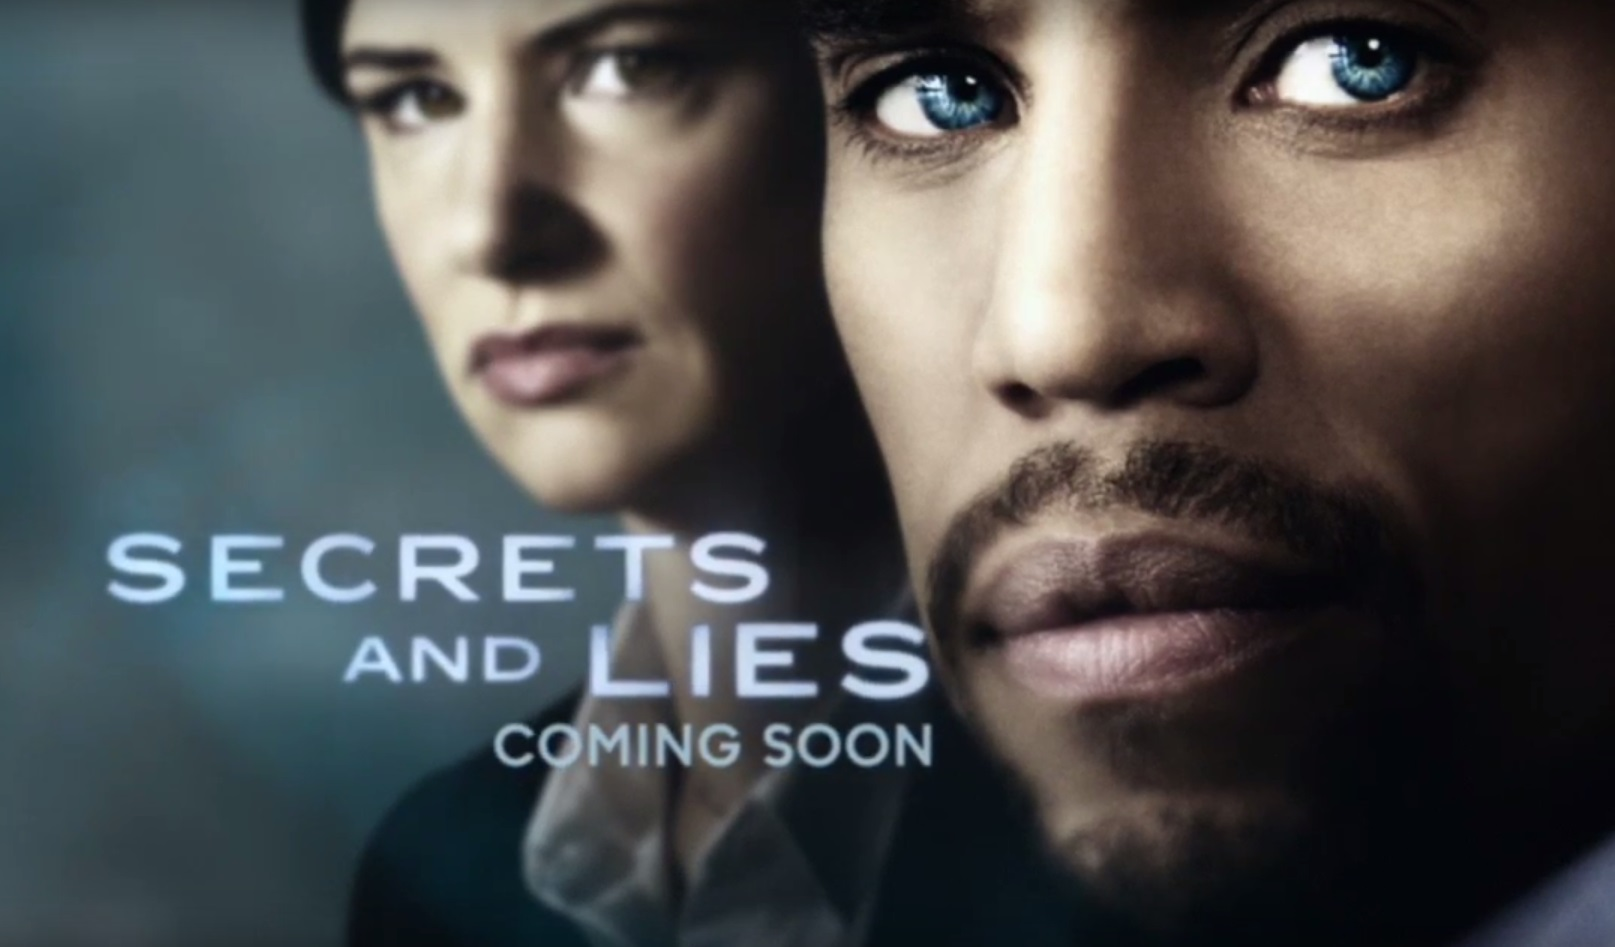 ABC's Secrets and Lies Season 2 With Michael Ealy Begins Tonight